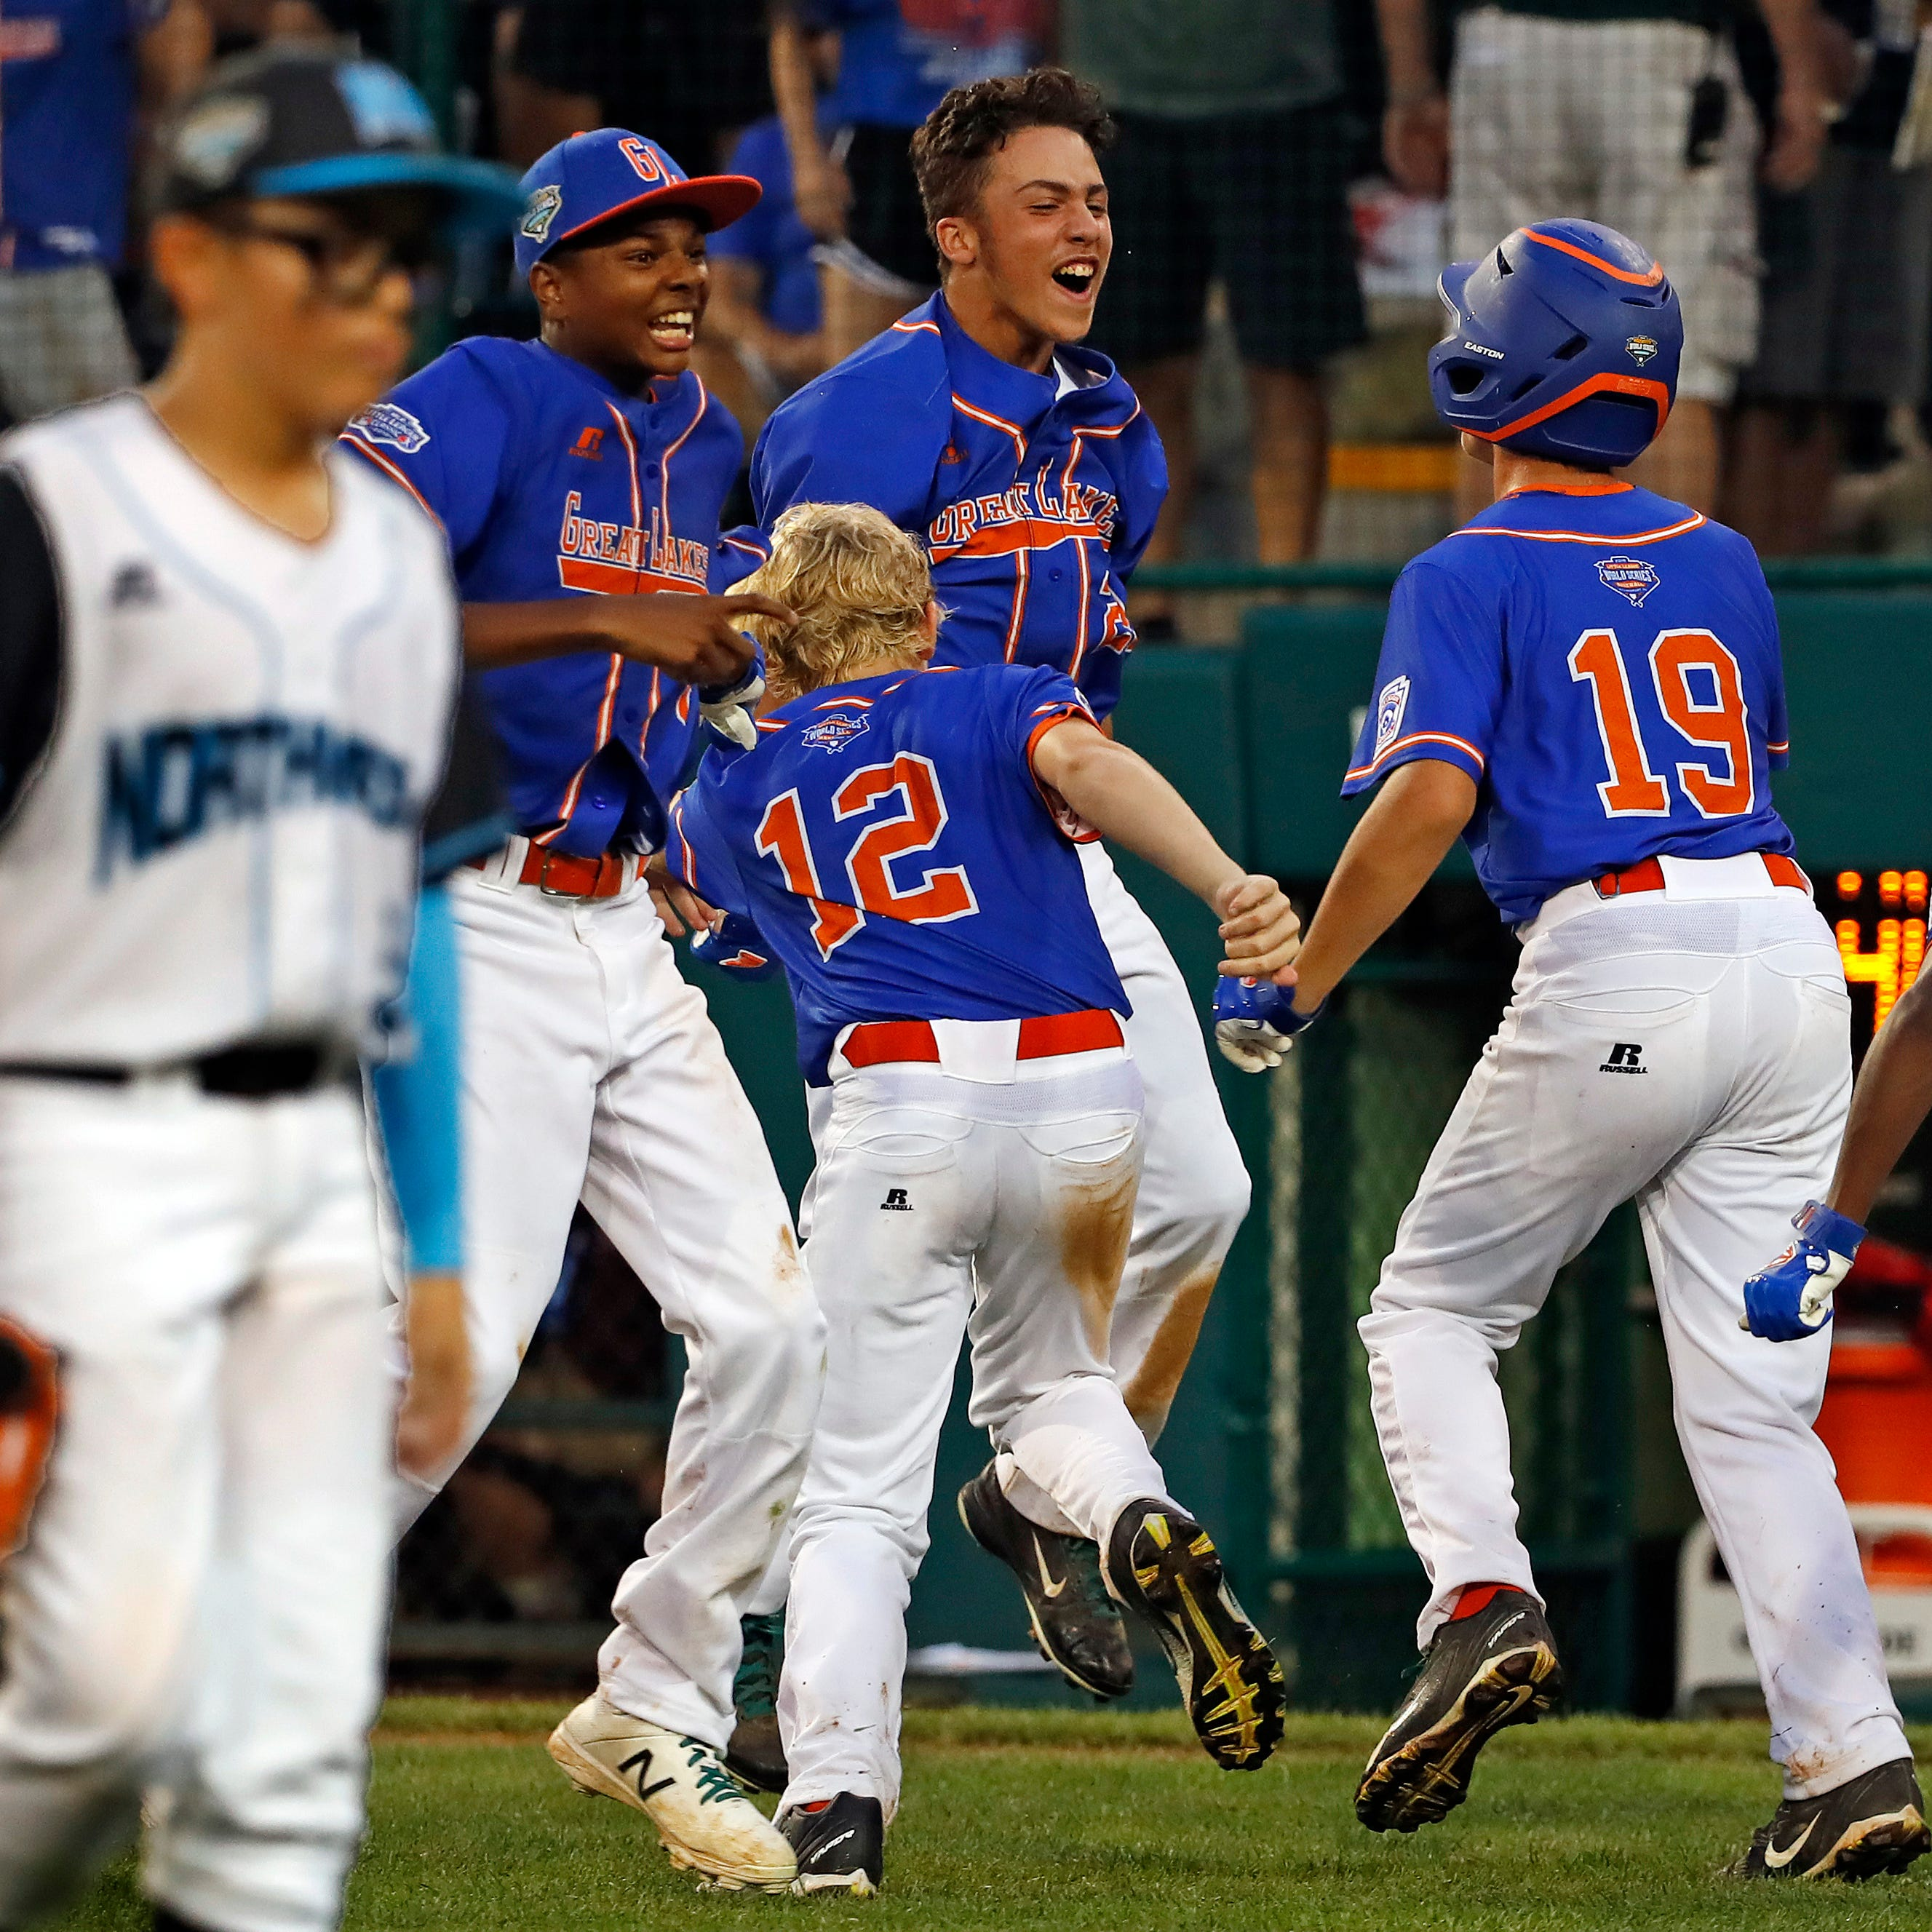 Comeback kids: GP Woods-Shores rallies in LLWS opener